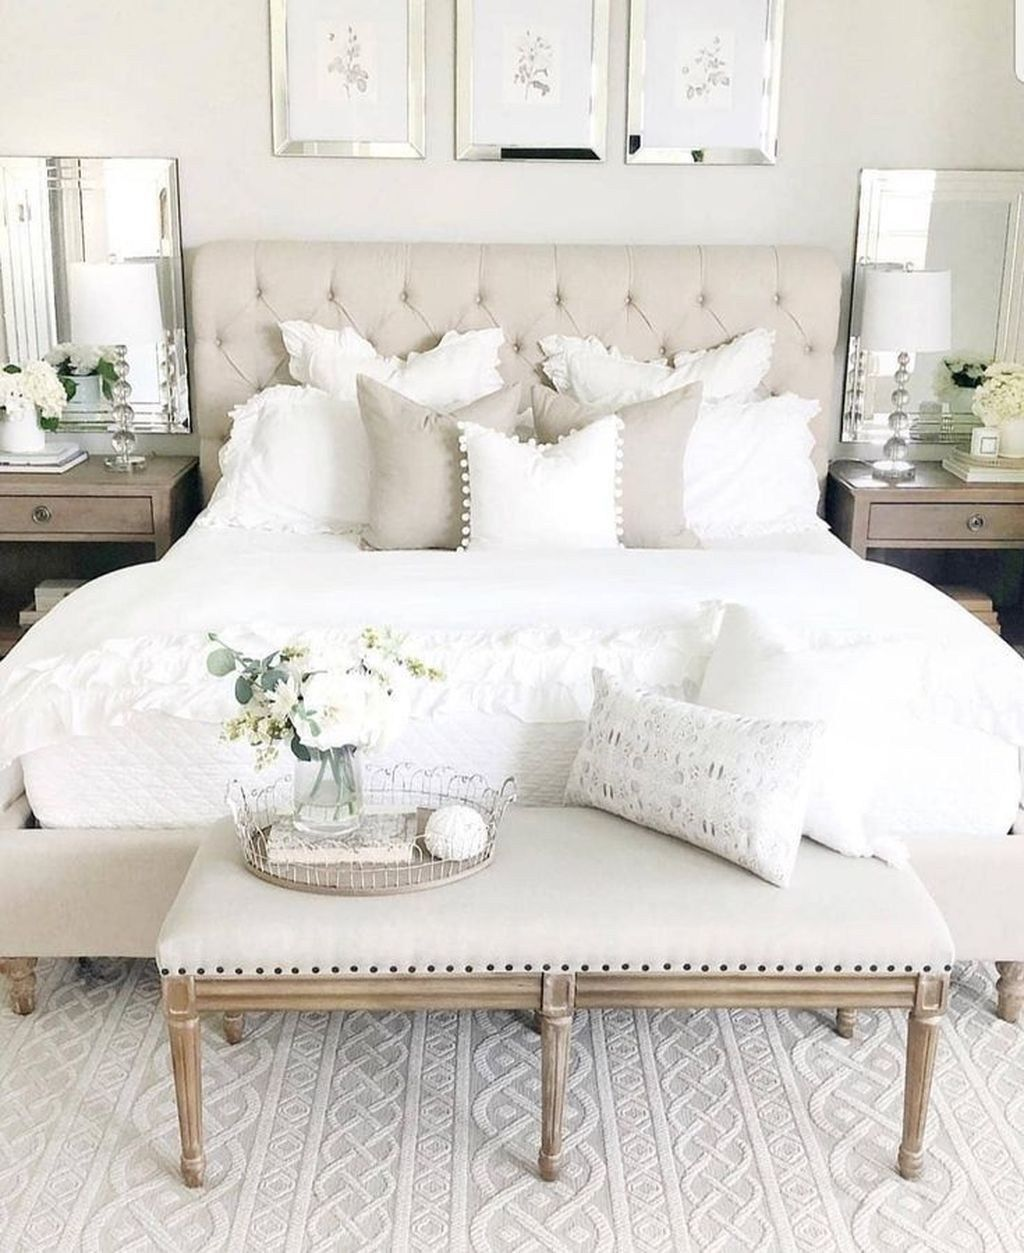 48 The Best Master Bedroom Design Ideas To Refresh - HOMYHOMEE